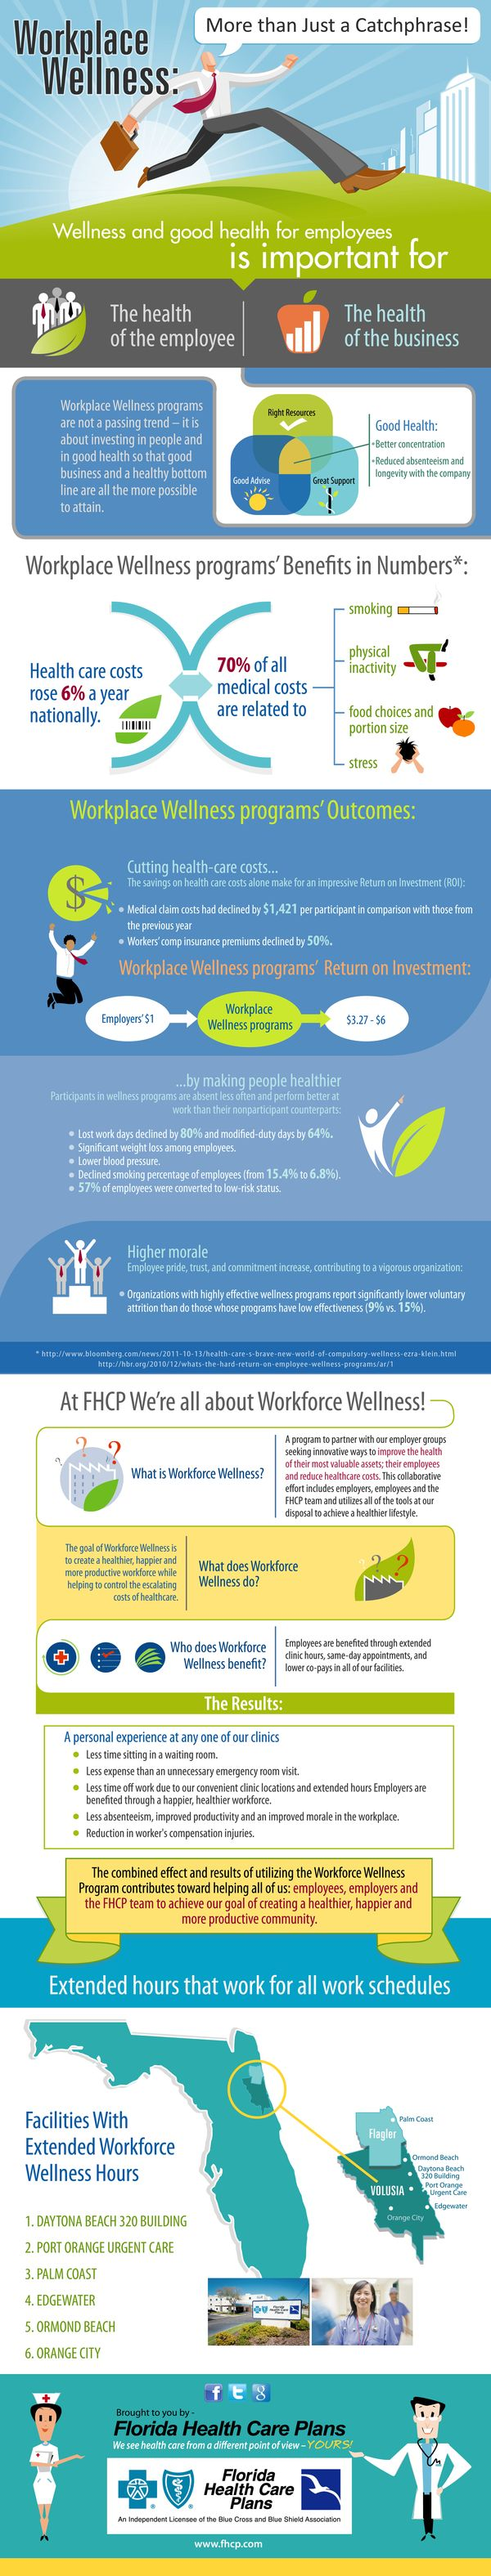 Infographic - Why Workplace Wellness Programs Are Good Business for Employers